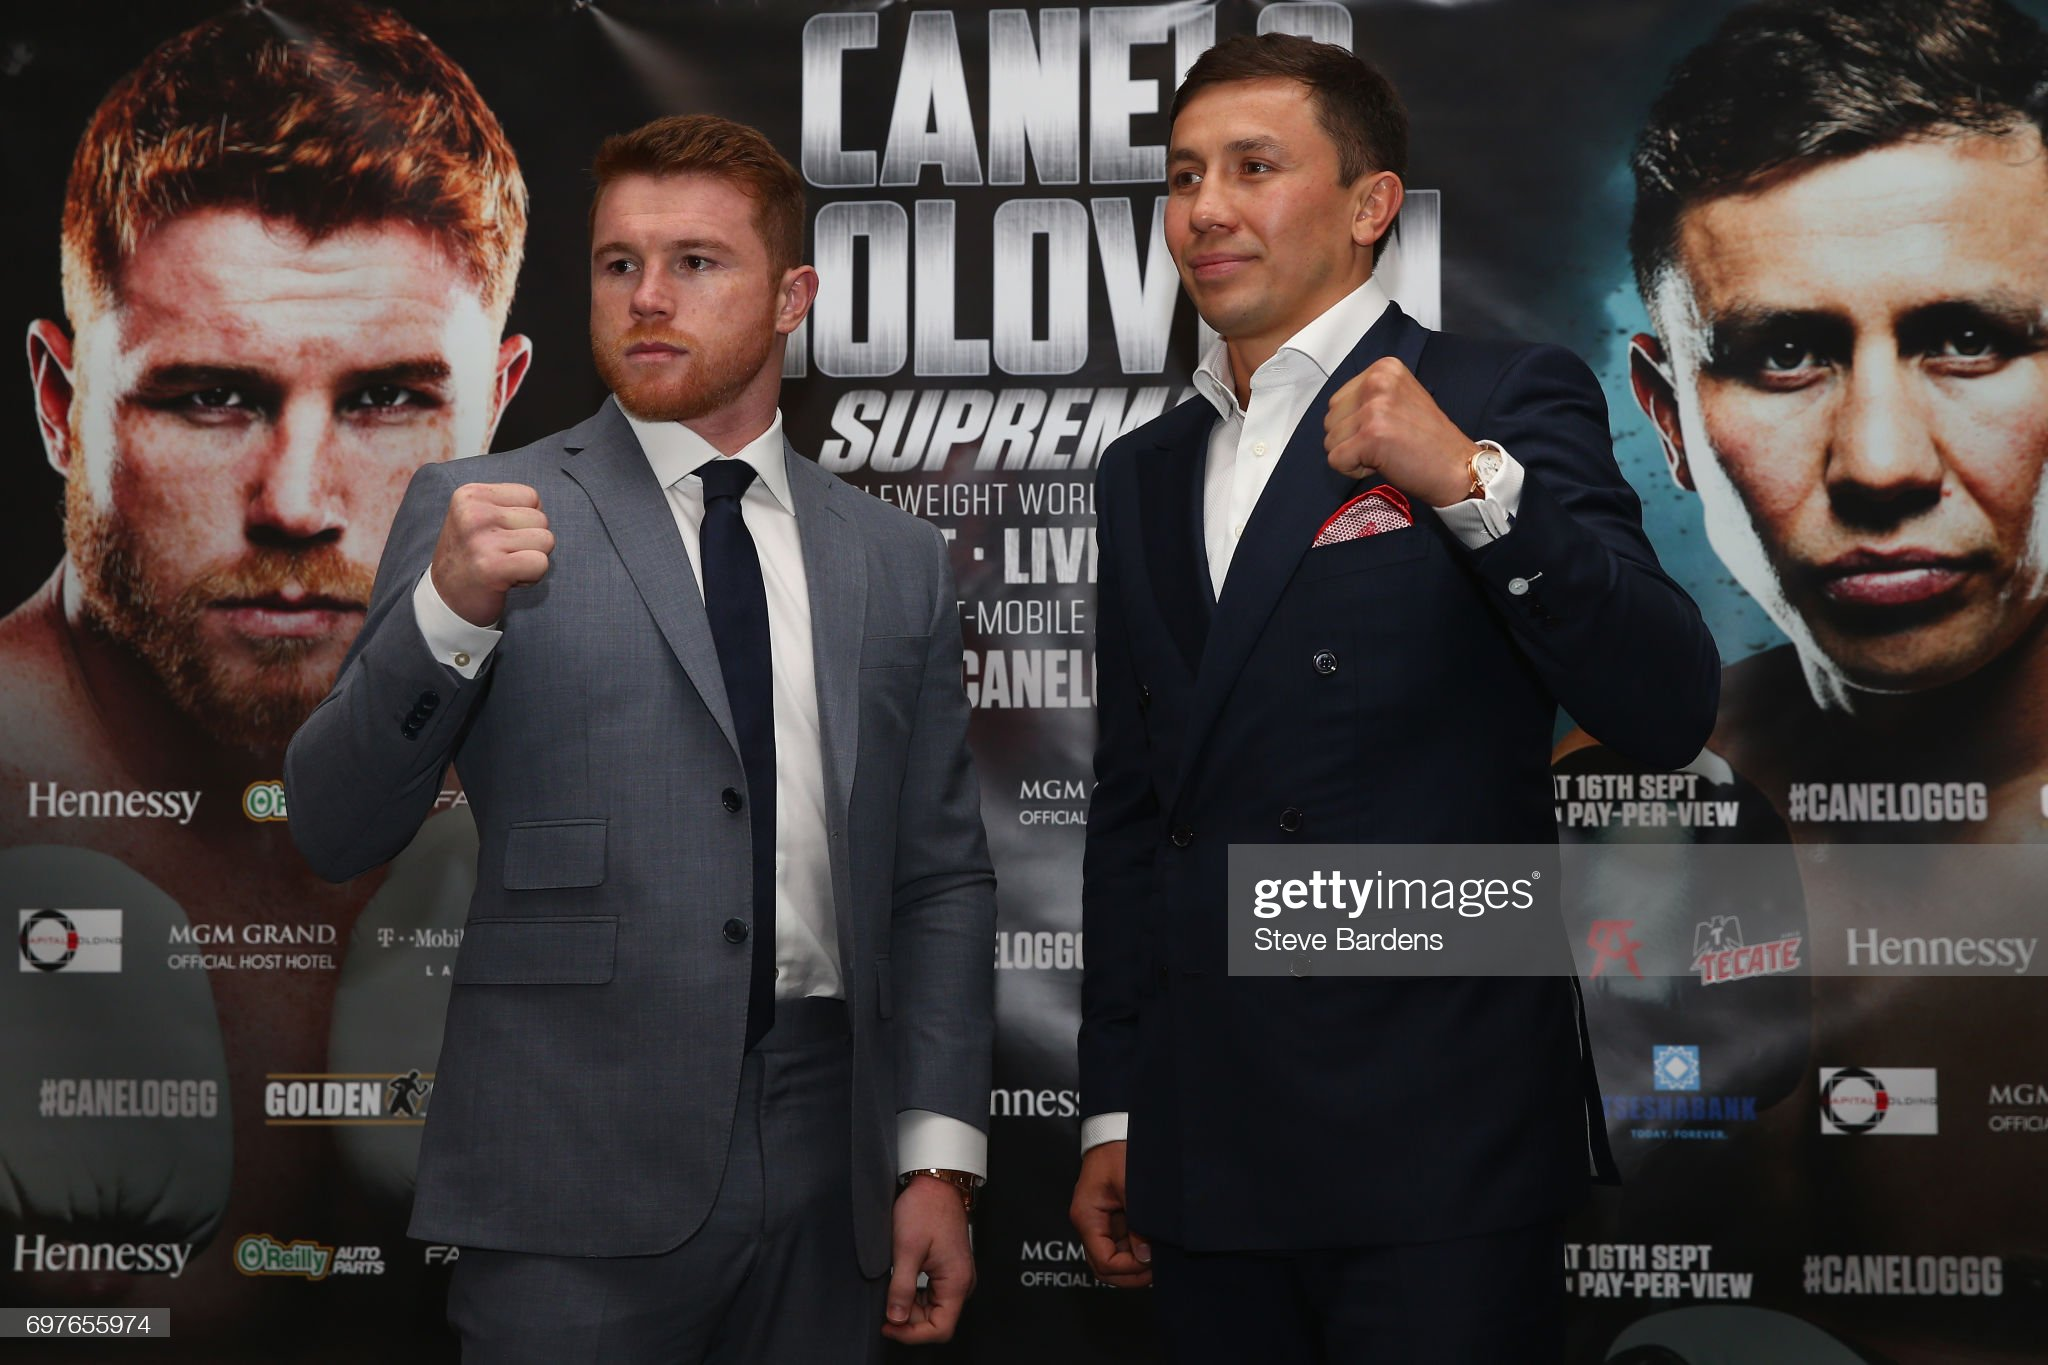 ¿Cuánto mide el Canelo Saúl Álvarez? - Altura - Real height Canelo-alvarez-and-gennady-golovkin-pose-up-after-the-canelo-alvarez-picture-id697655974?s=2048x2048